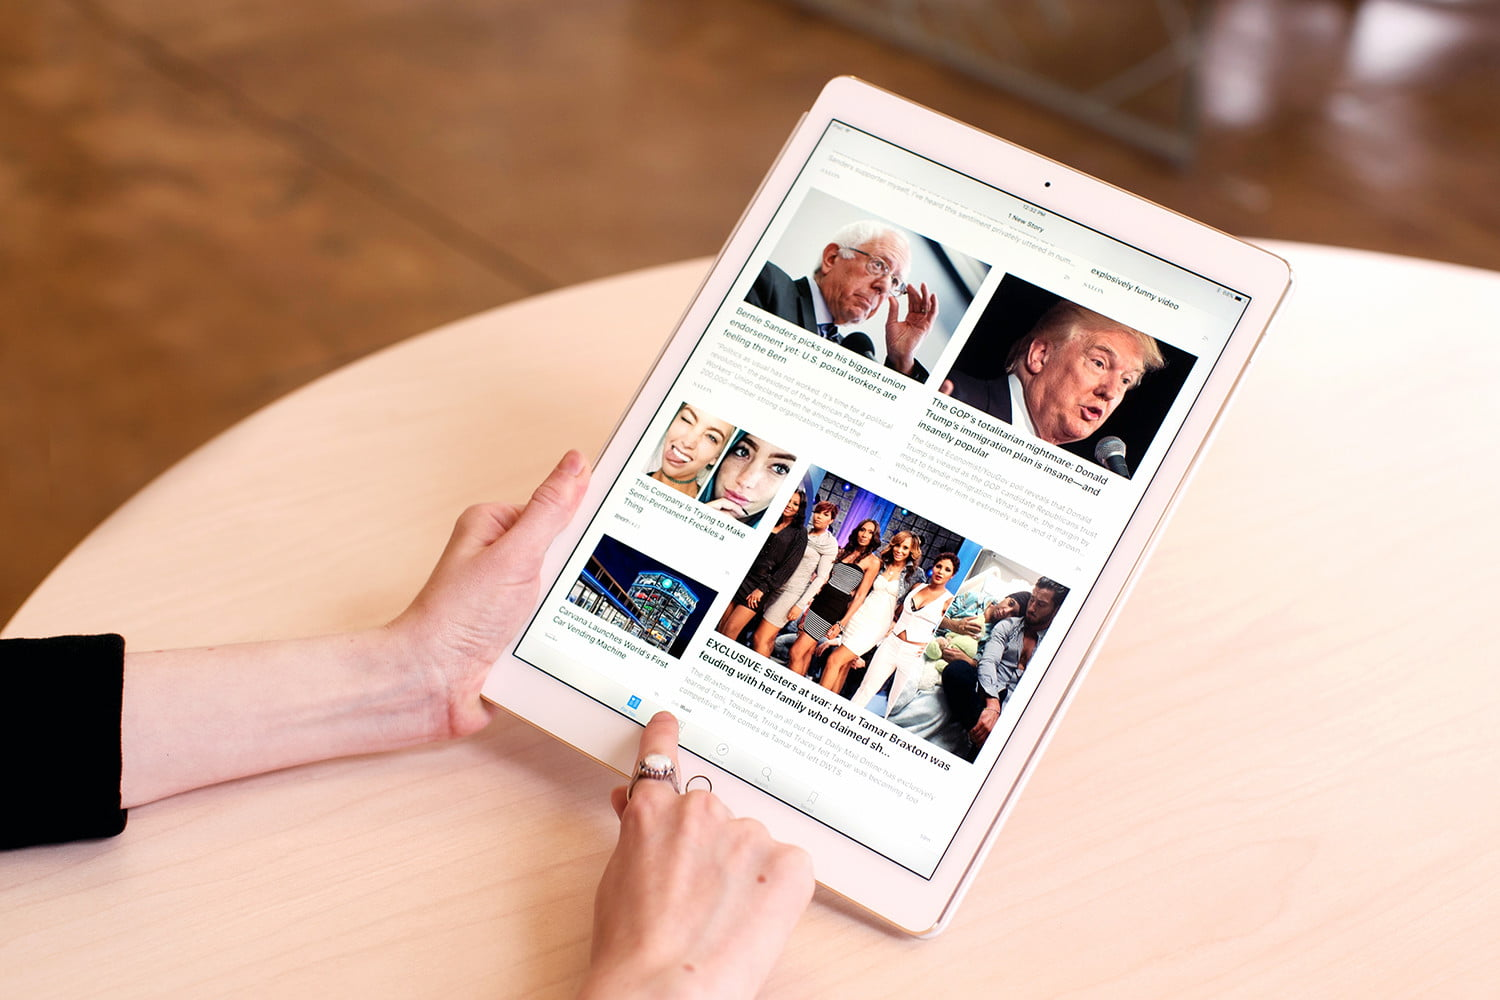 What are the pros and cons of buying an Apple ipad? Please help!?